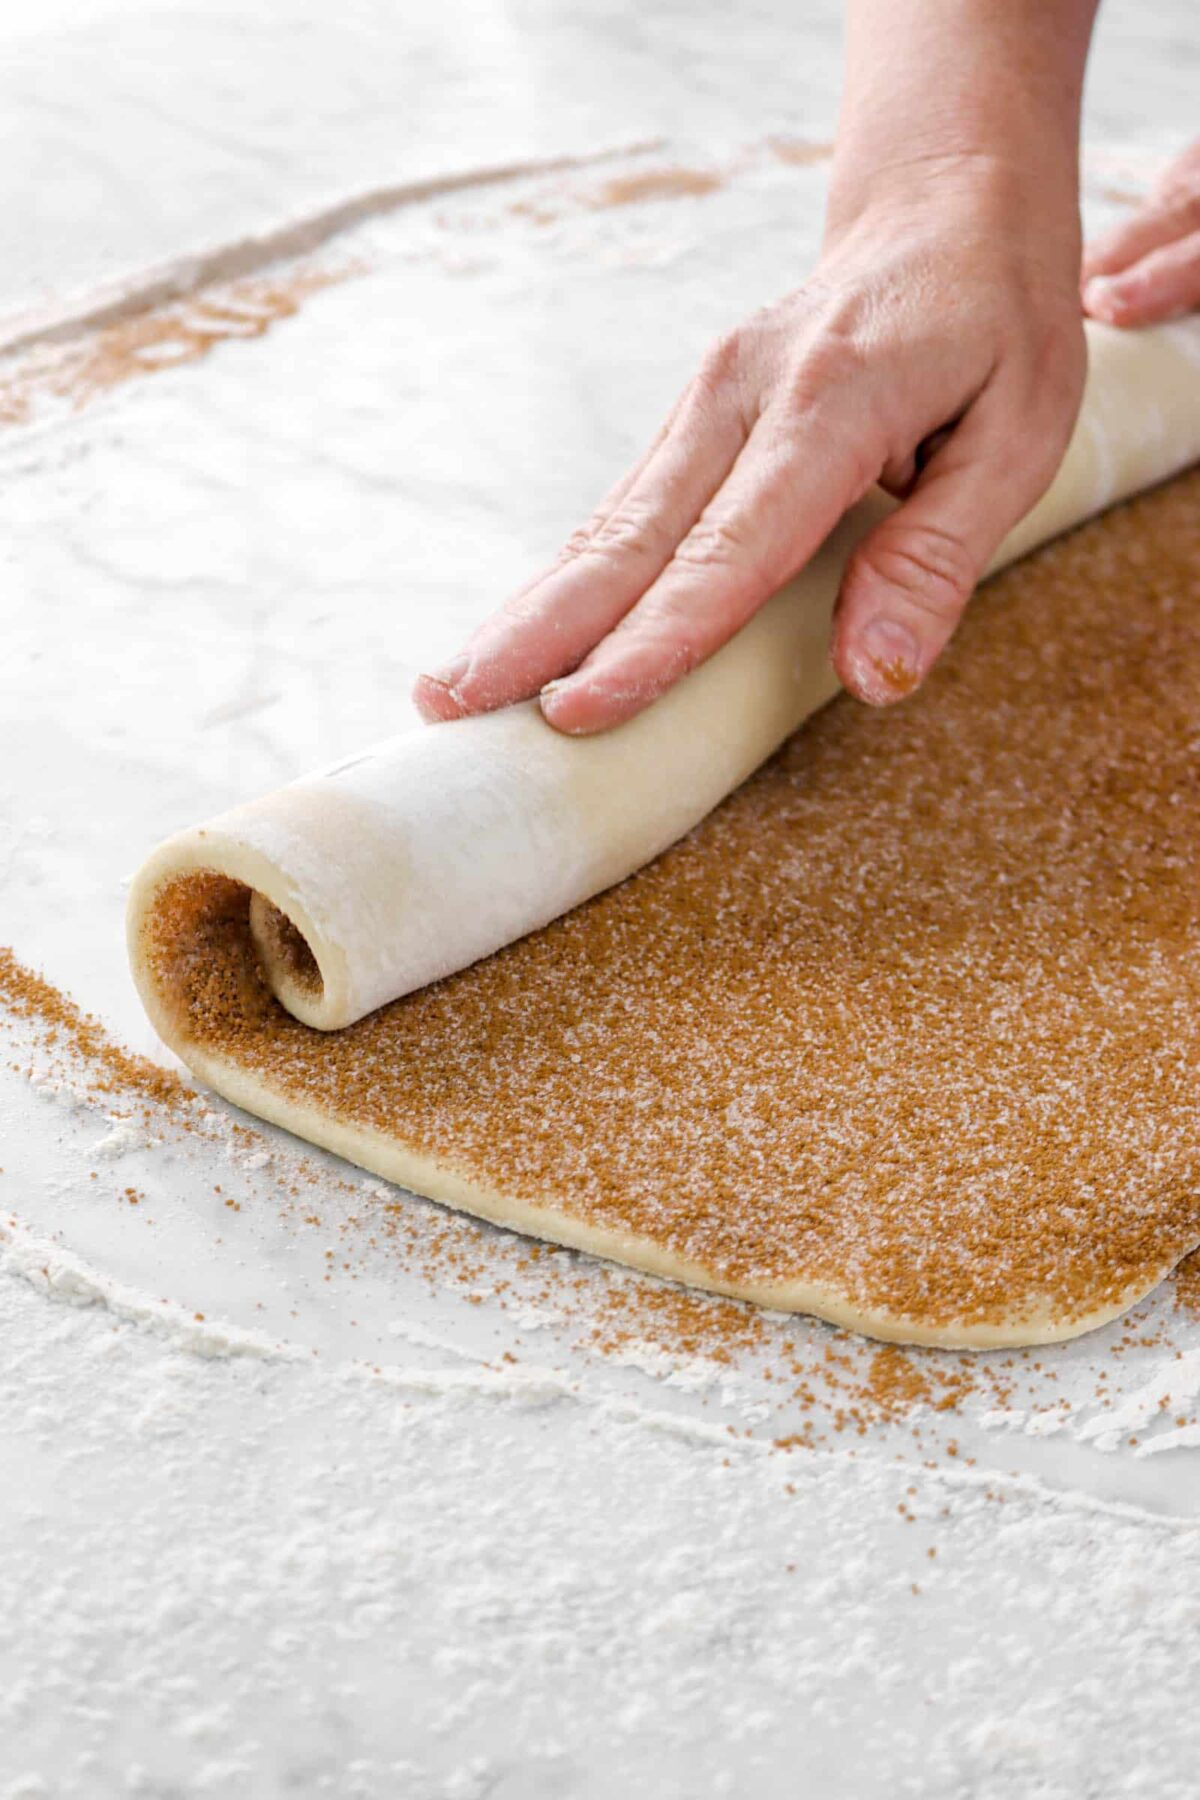 dough being rolled